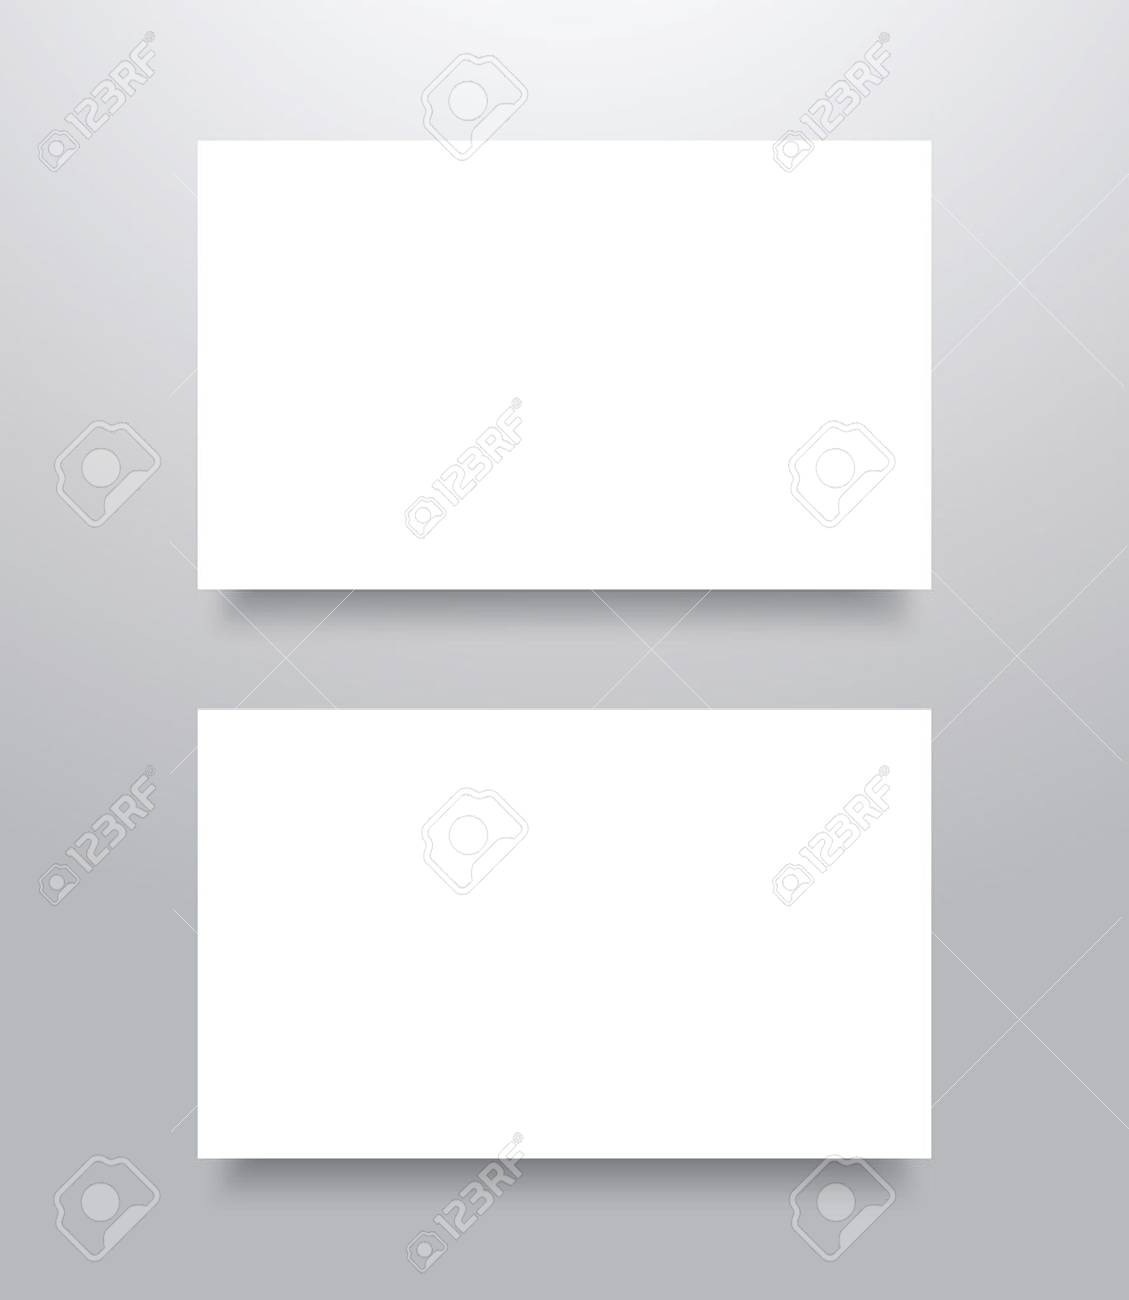 Blank business card mockup template with shadow illustration blank business card mockup template with shadow illustration stock vector 56475046 accmission Images